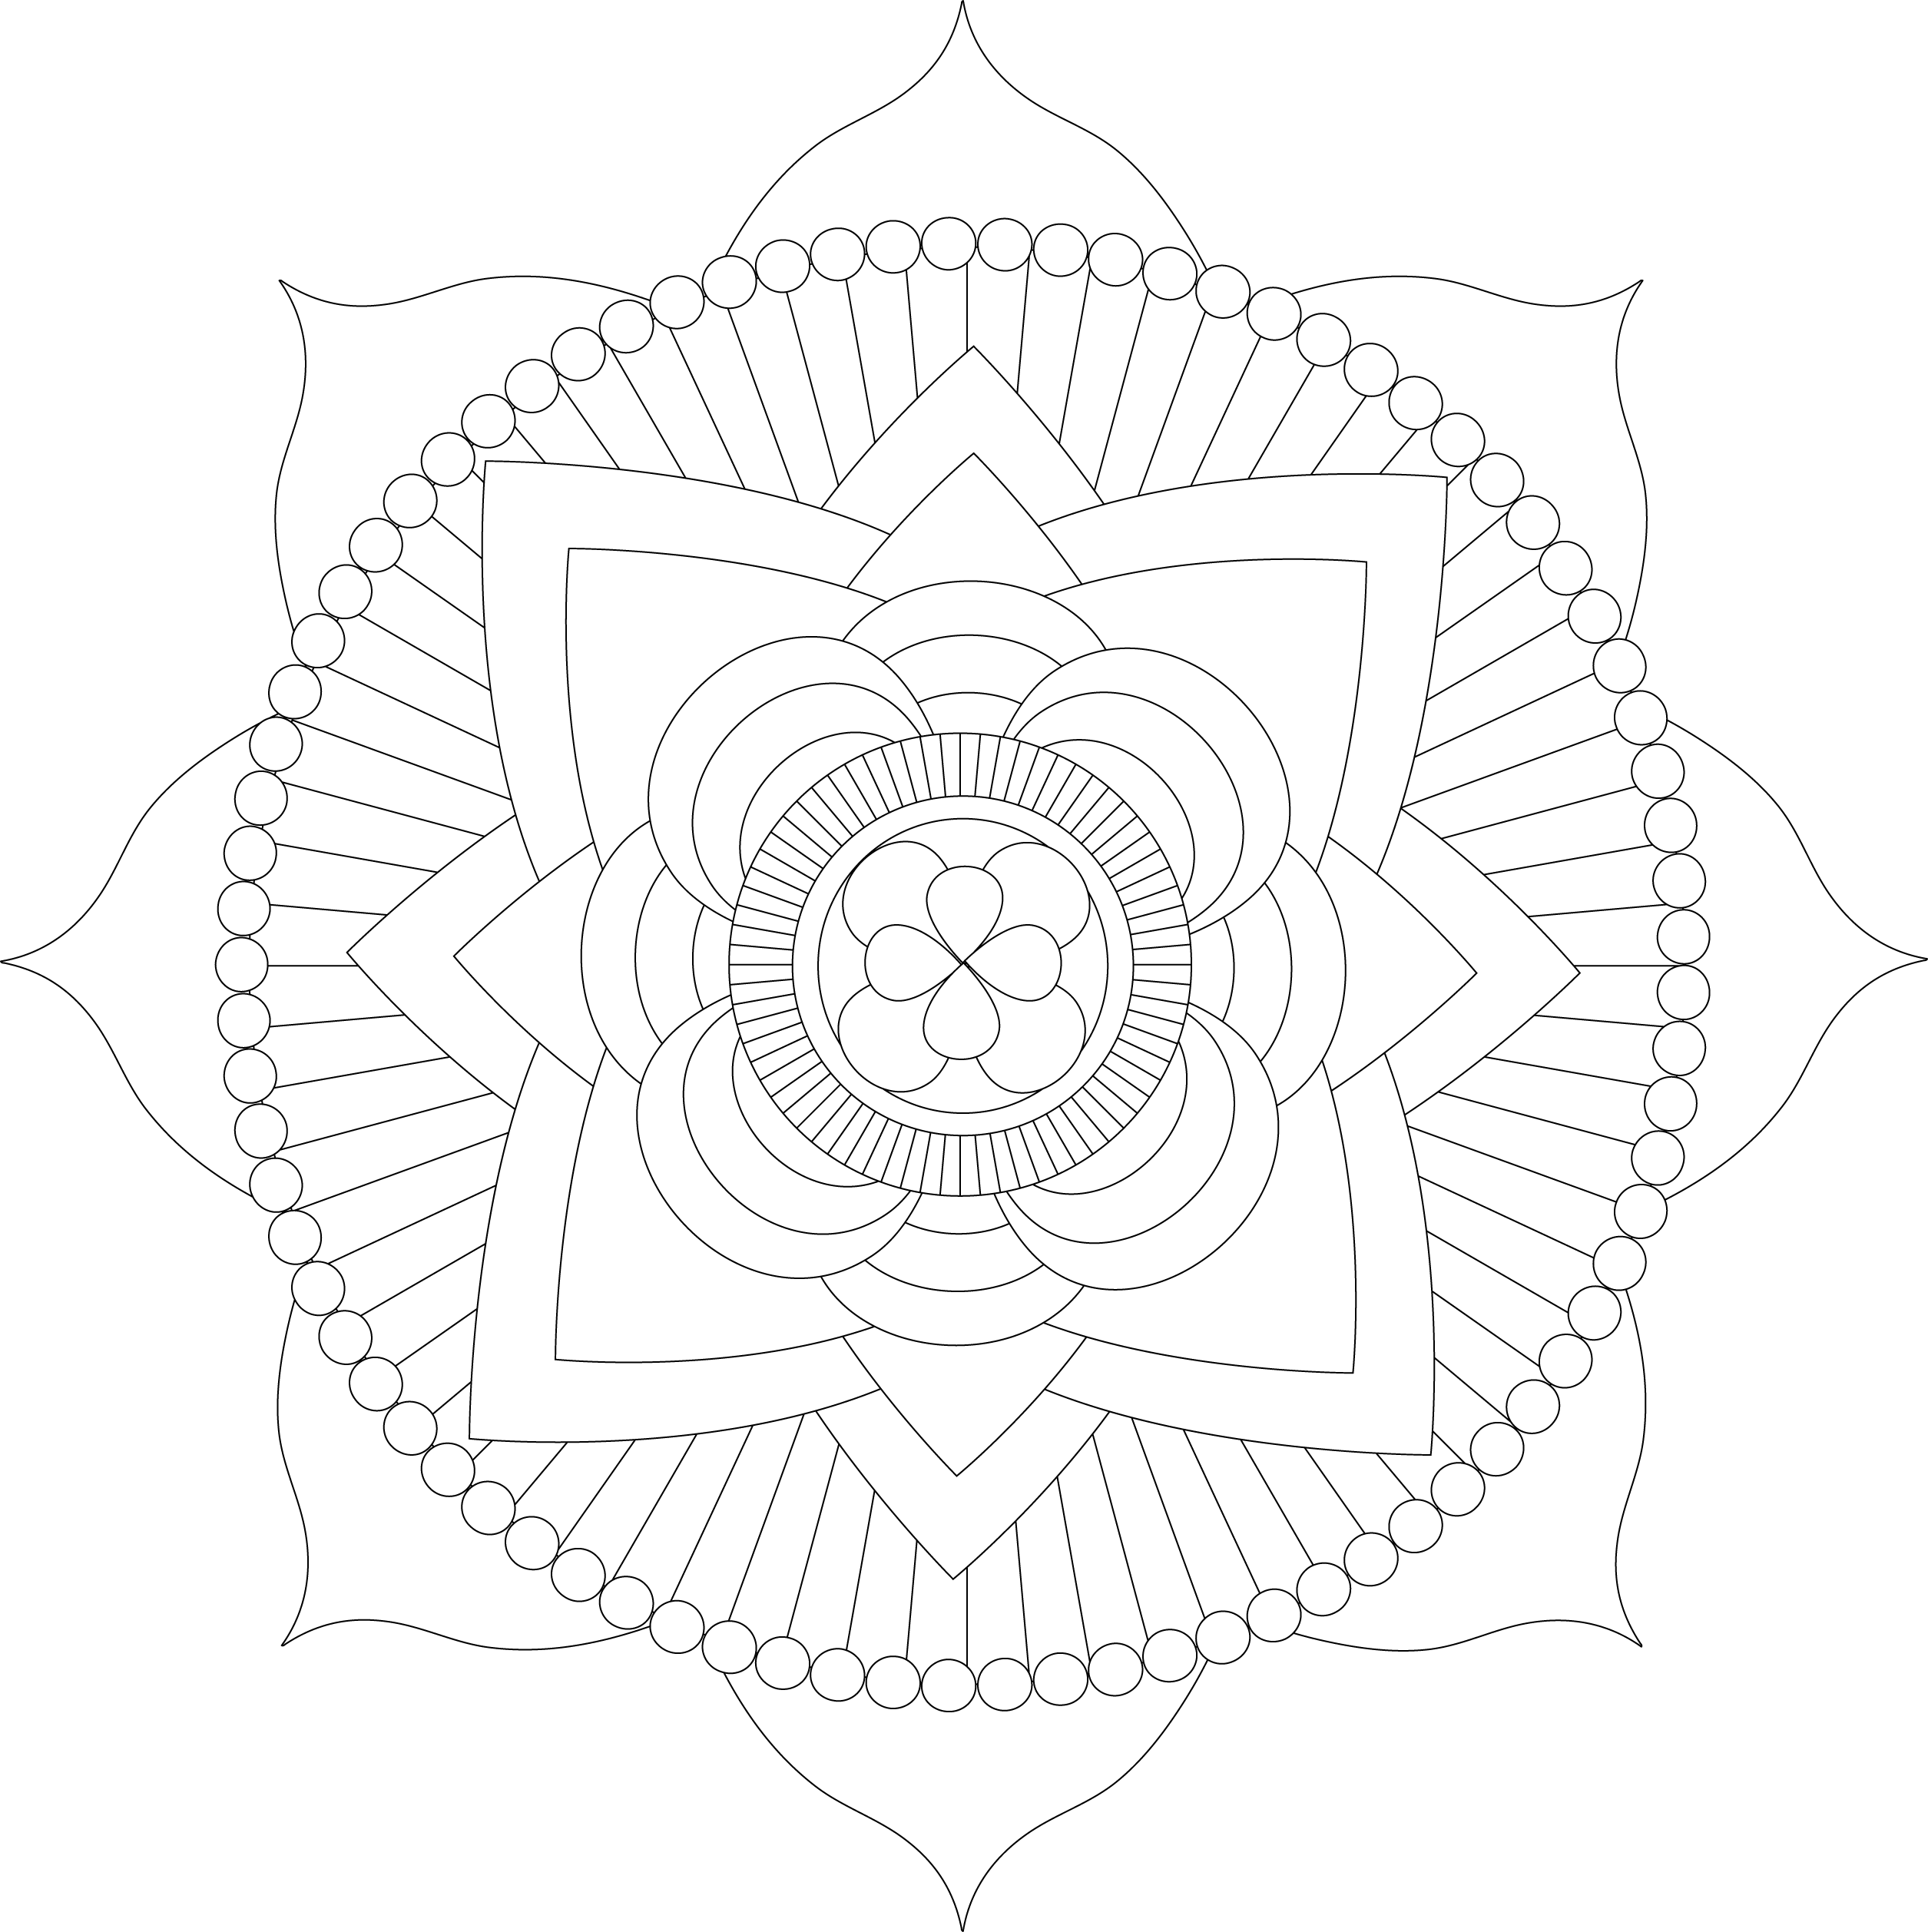 free mandala coloring pages for kids mandala coloring pages coloringpages4kidzcom mandala pages kids free coloring for